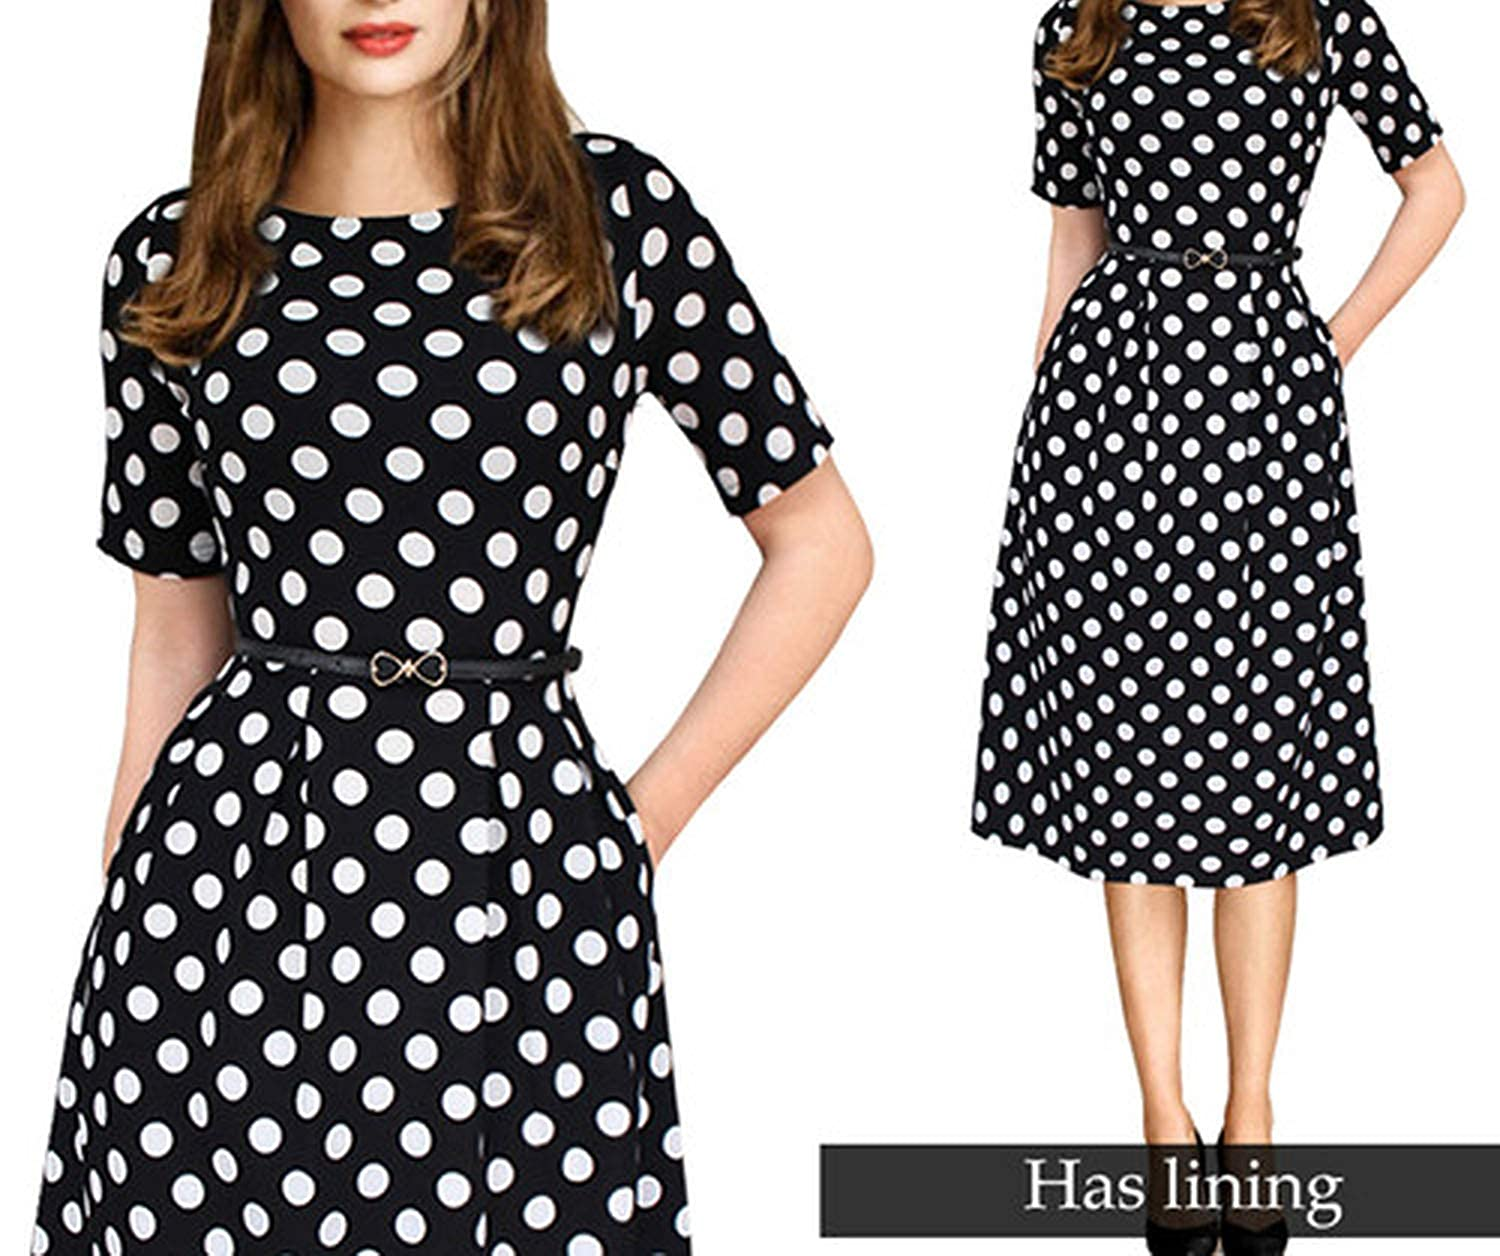 New Black White Dot Fragrancety Womens Elegant Vintage Summer Polka Dot Belted Office Casual Party A Line Dress